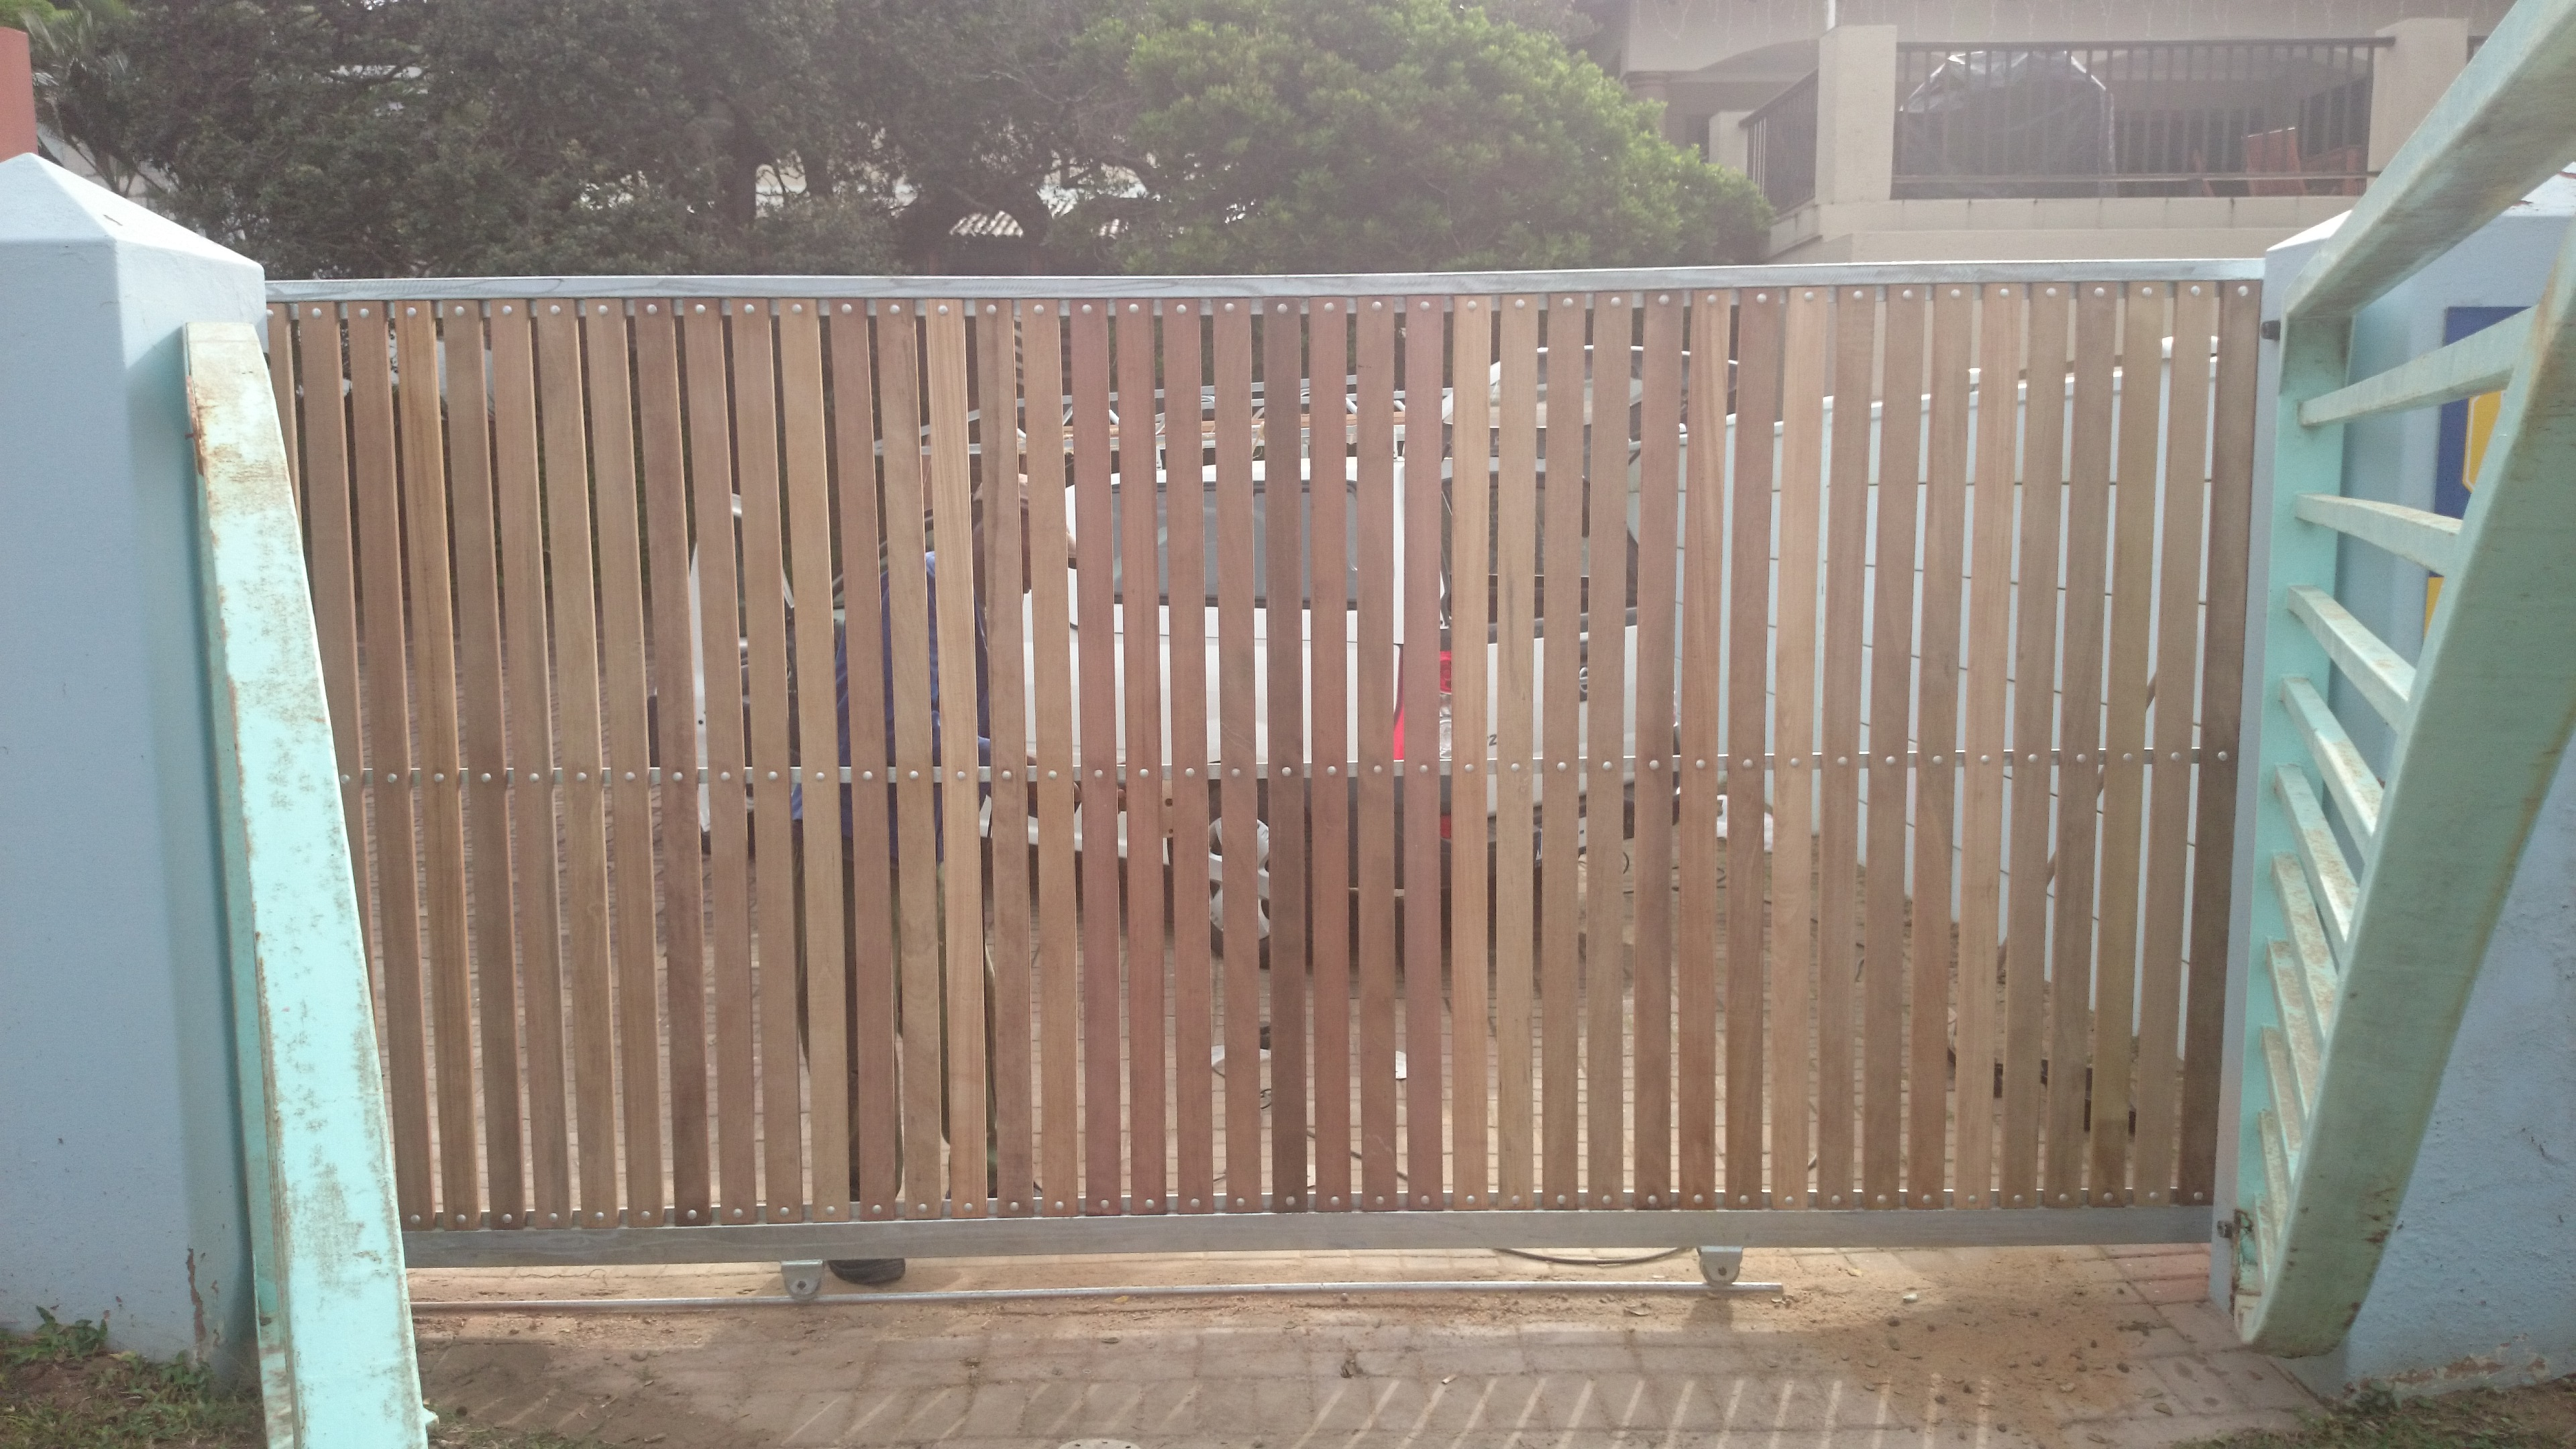 Driveway gate clad in balau wood | The Wood Joint - Wooden Decks and ...